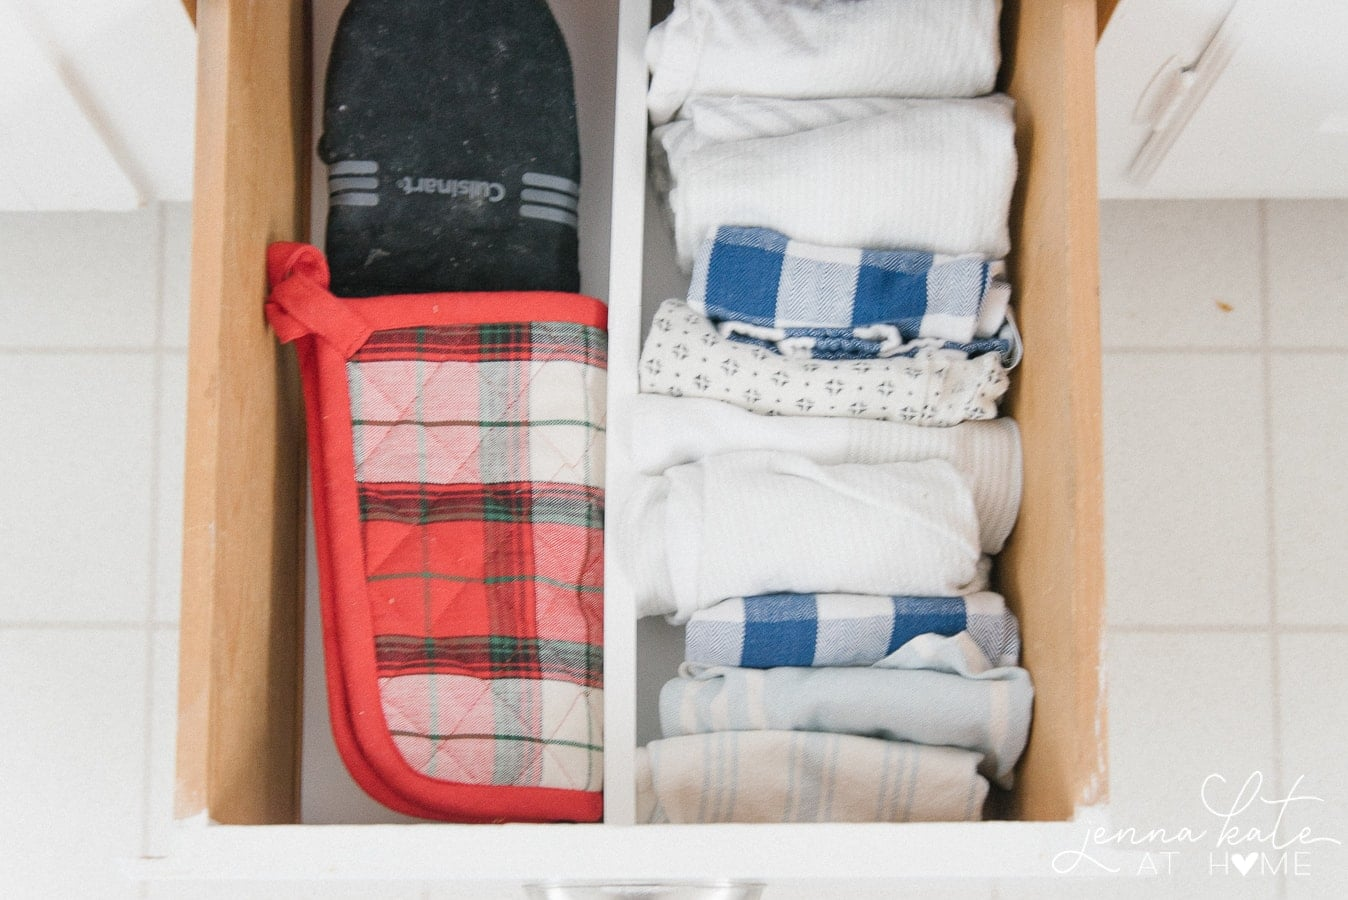 Organized towel drawer in the kitchen with a handy divider